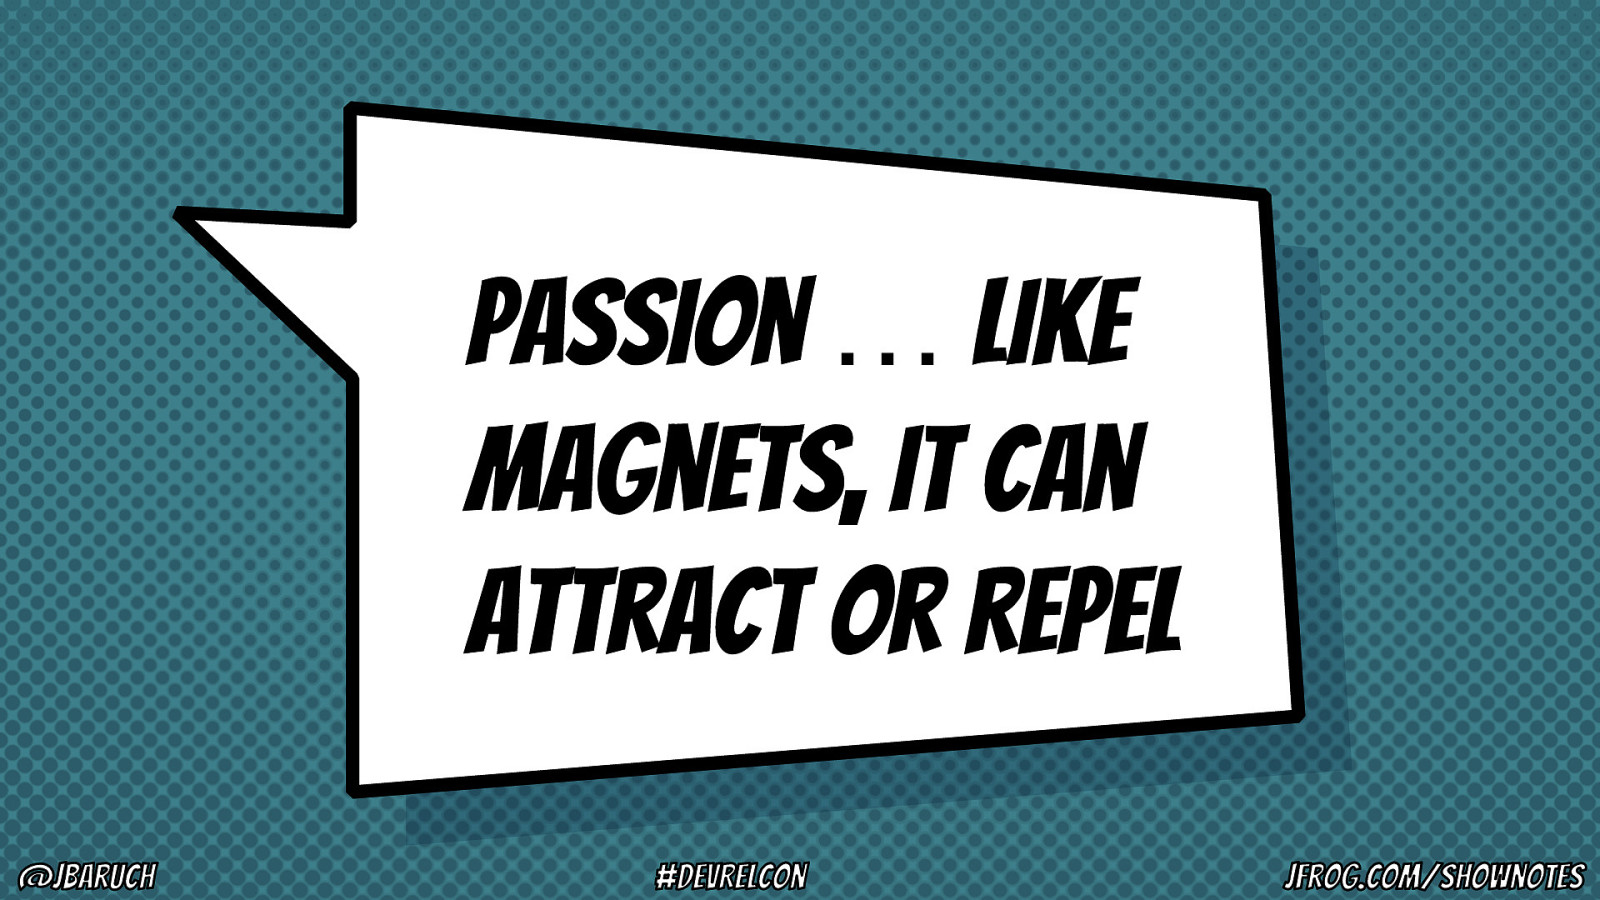 Passion … like magnets, it can attract or repel